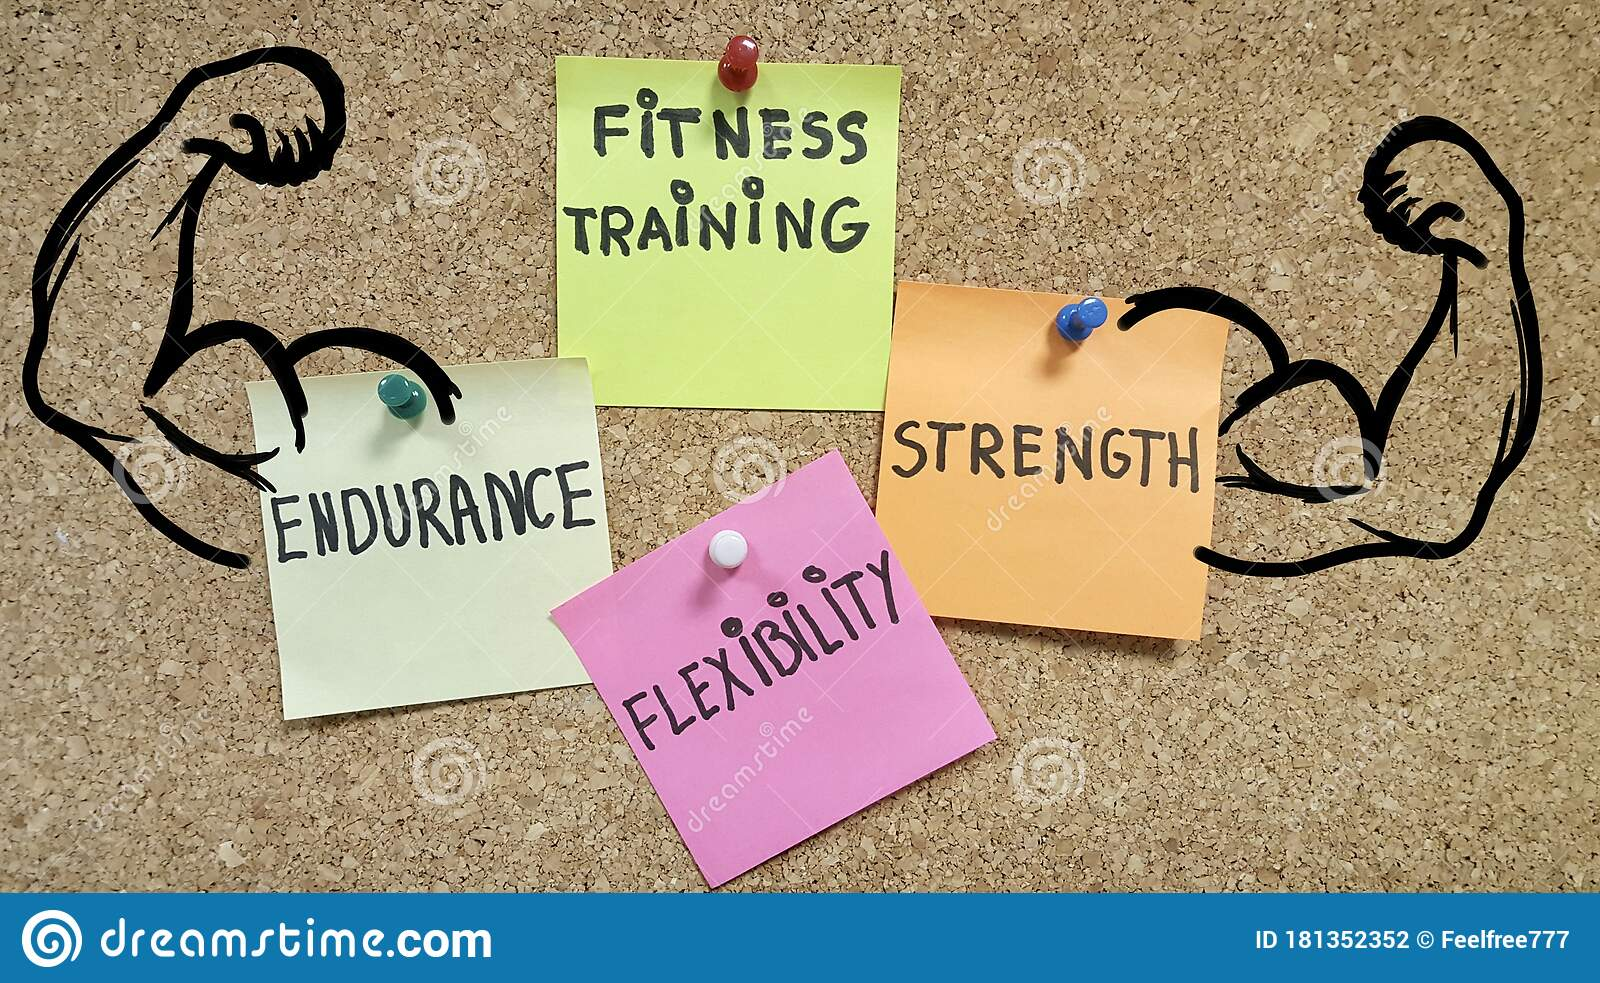 Motivation Quotes Fitness Training Corporative Business Concep Artwork Stock Photo Image Of Format Concep 181352352